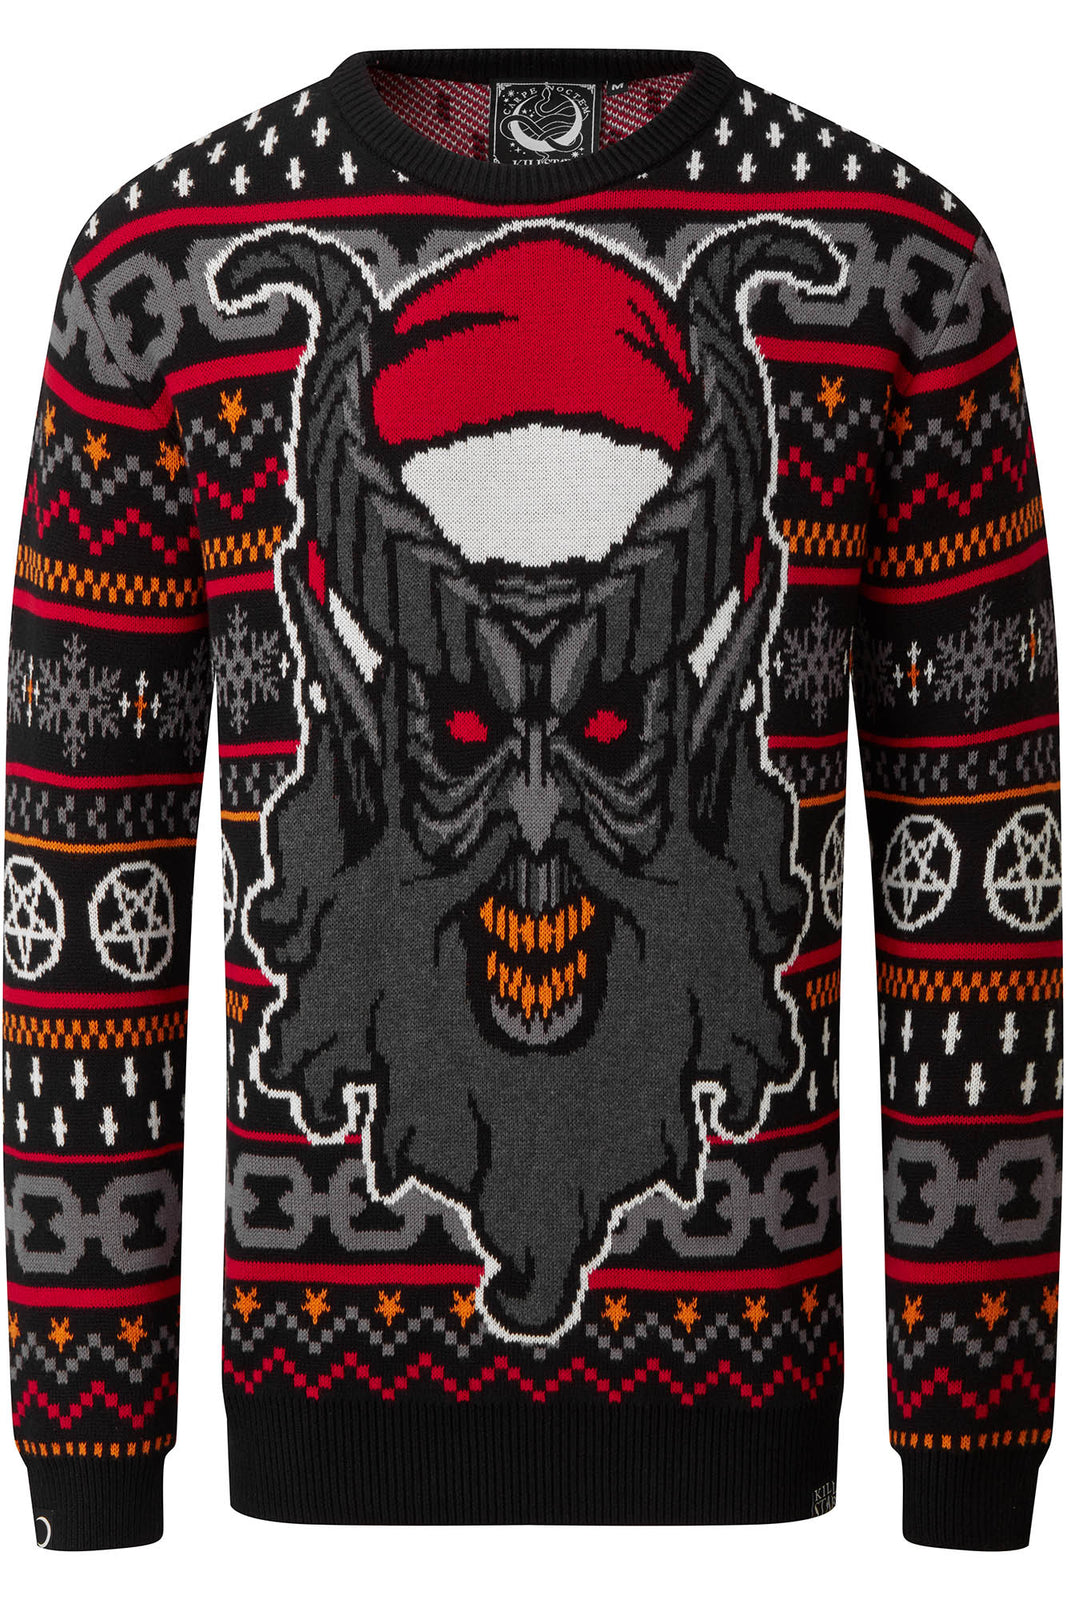 Hail Santa Knit Sweater [LTD]